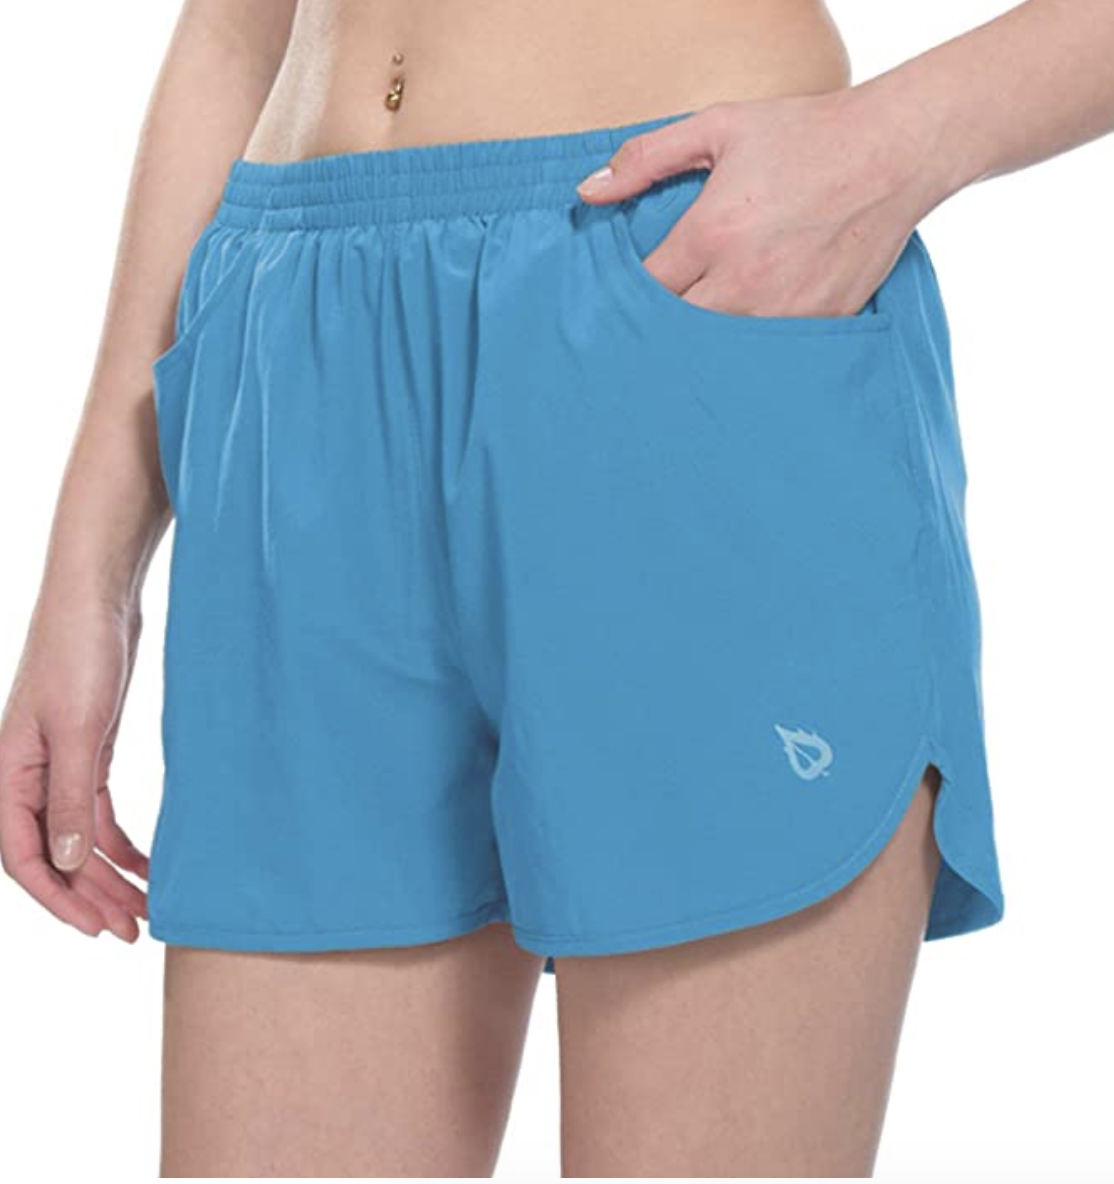 A model in blue running shorts with an elastic waist, pockets, and a hem that falls above mid-thigh